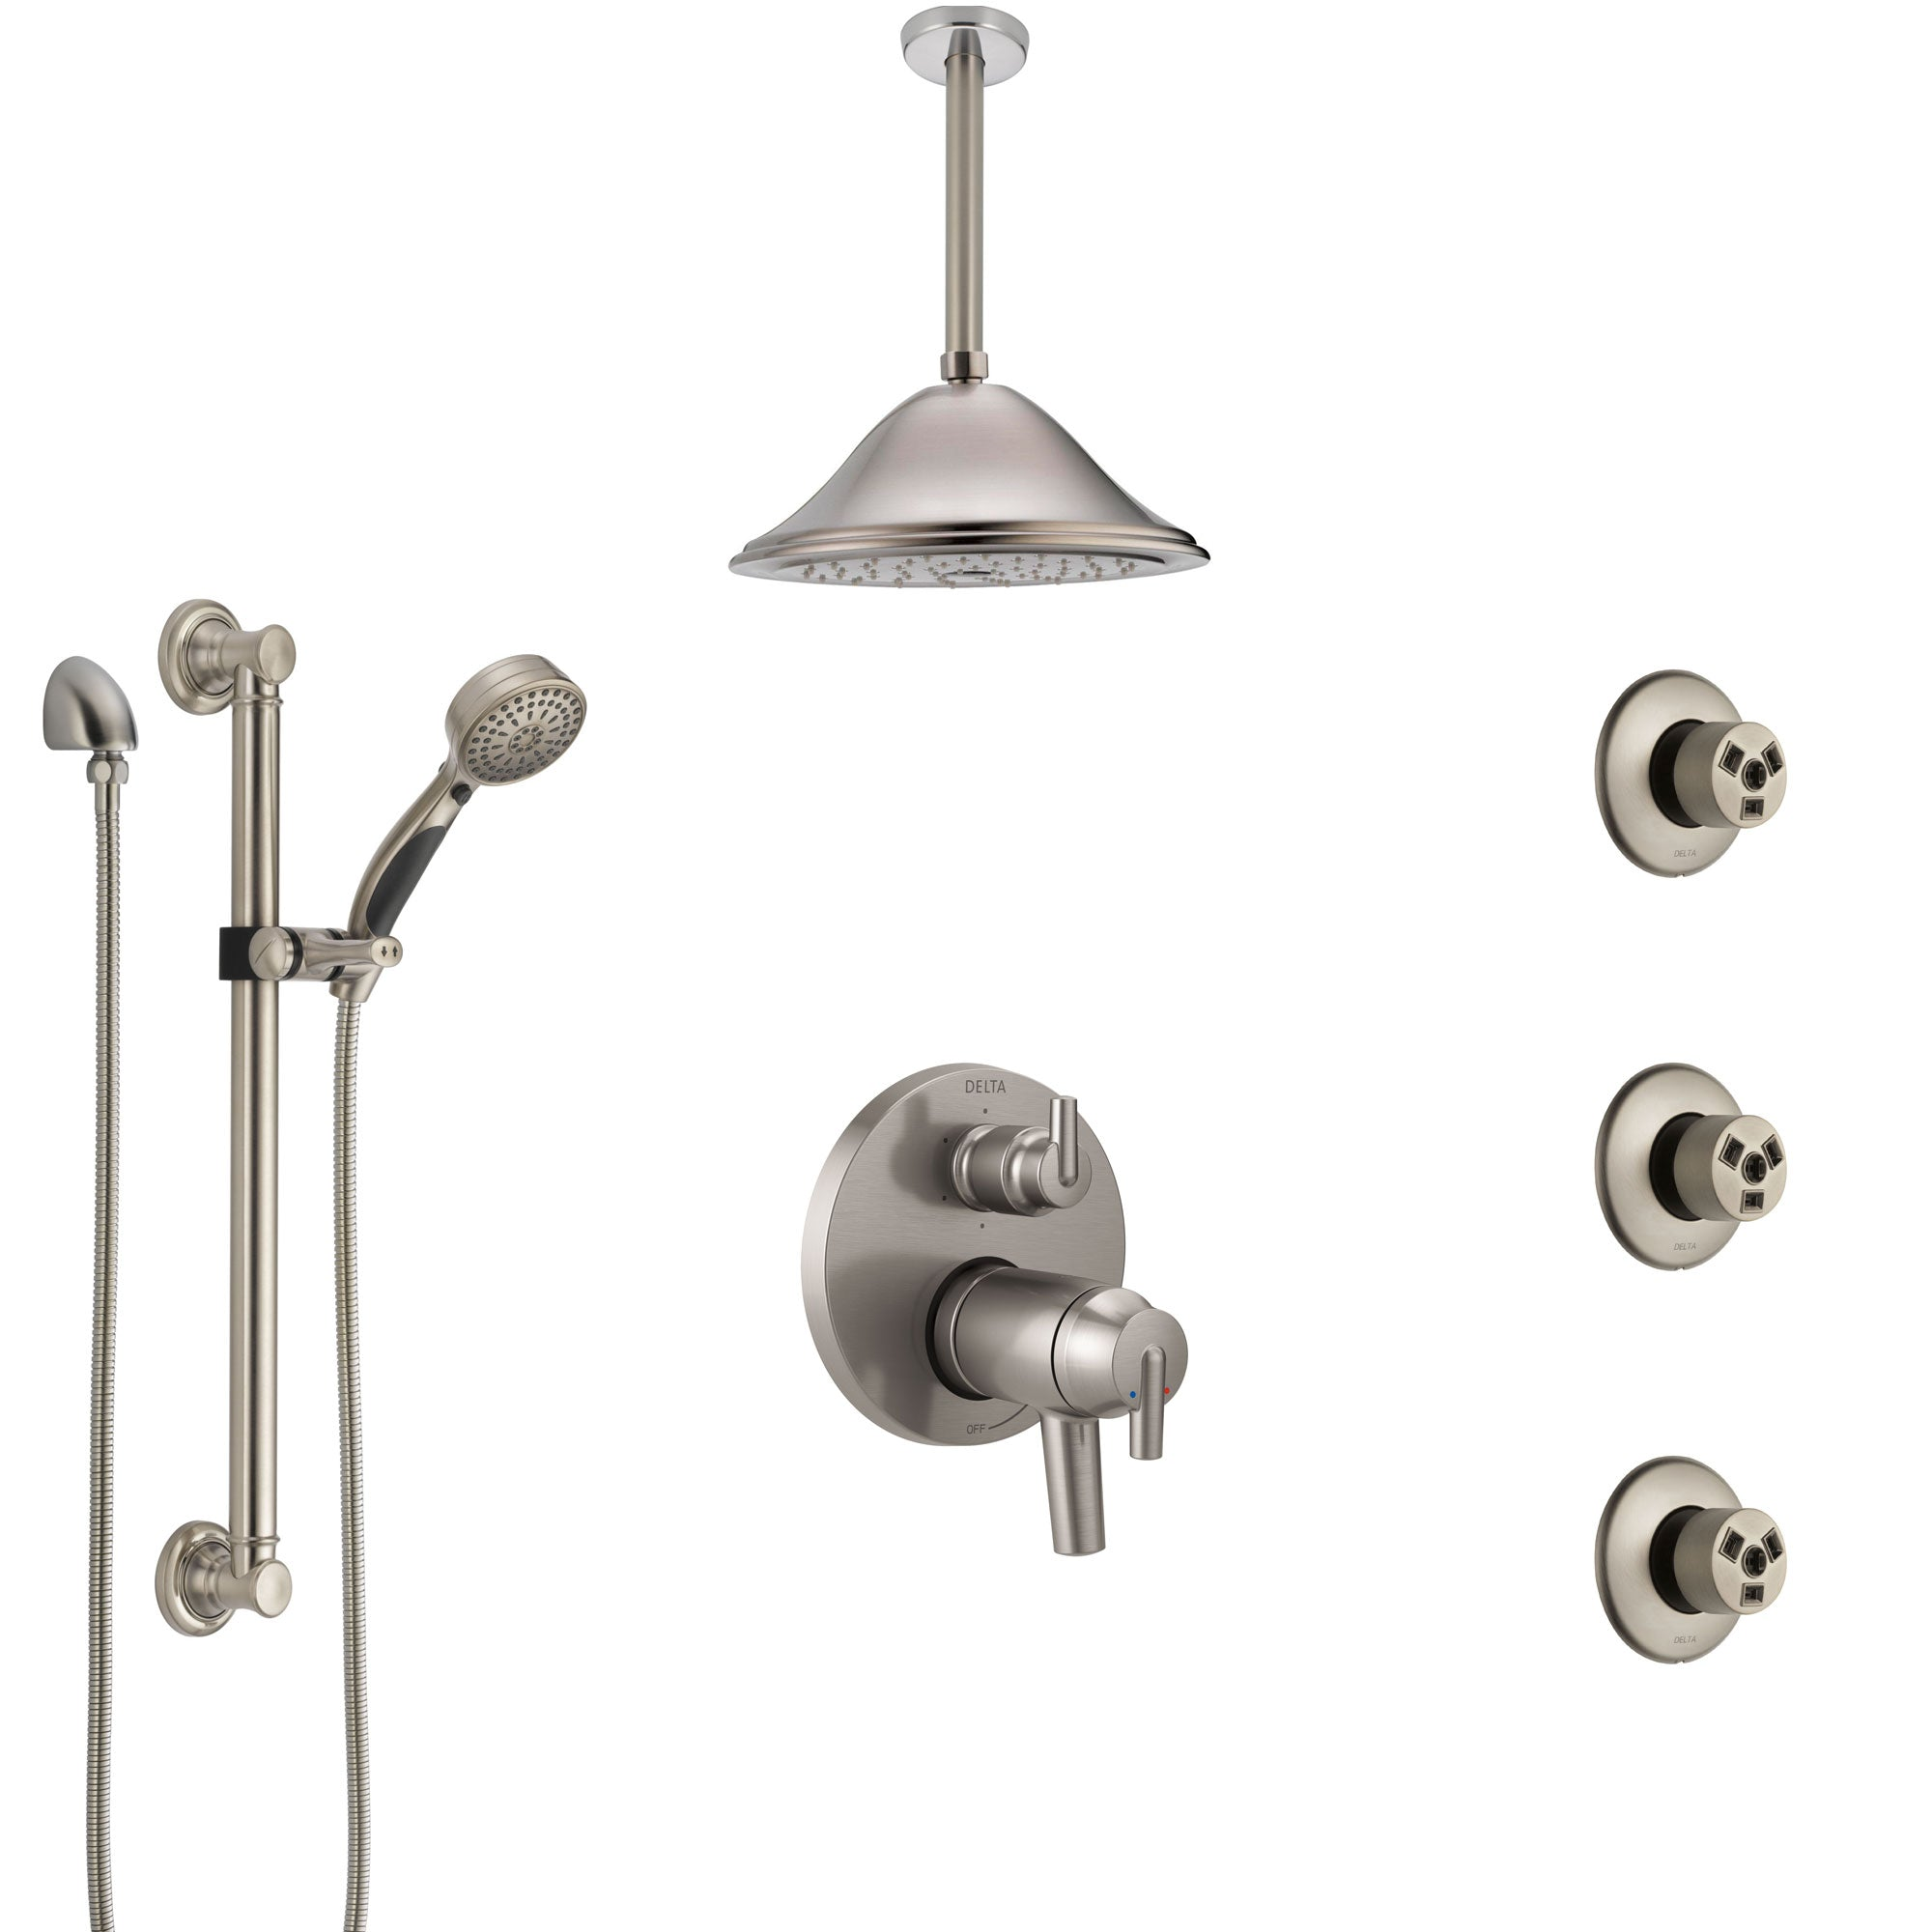 Delta Trinsic Dual Thermostatic Control Stainless Steel Finish Shower System, Ceiling Showerhead, 3 Body Jets, Grab Bar Hand Spray SS27T959SS4